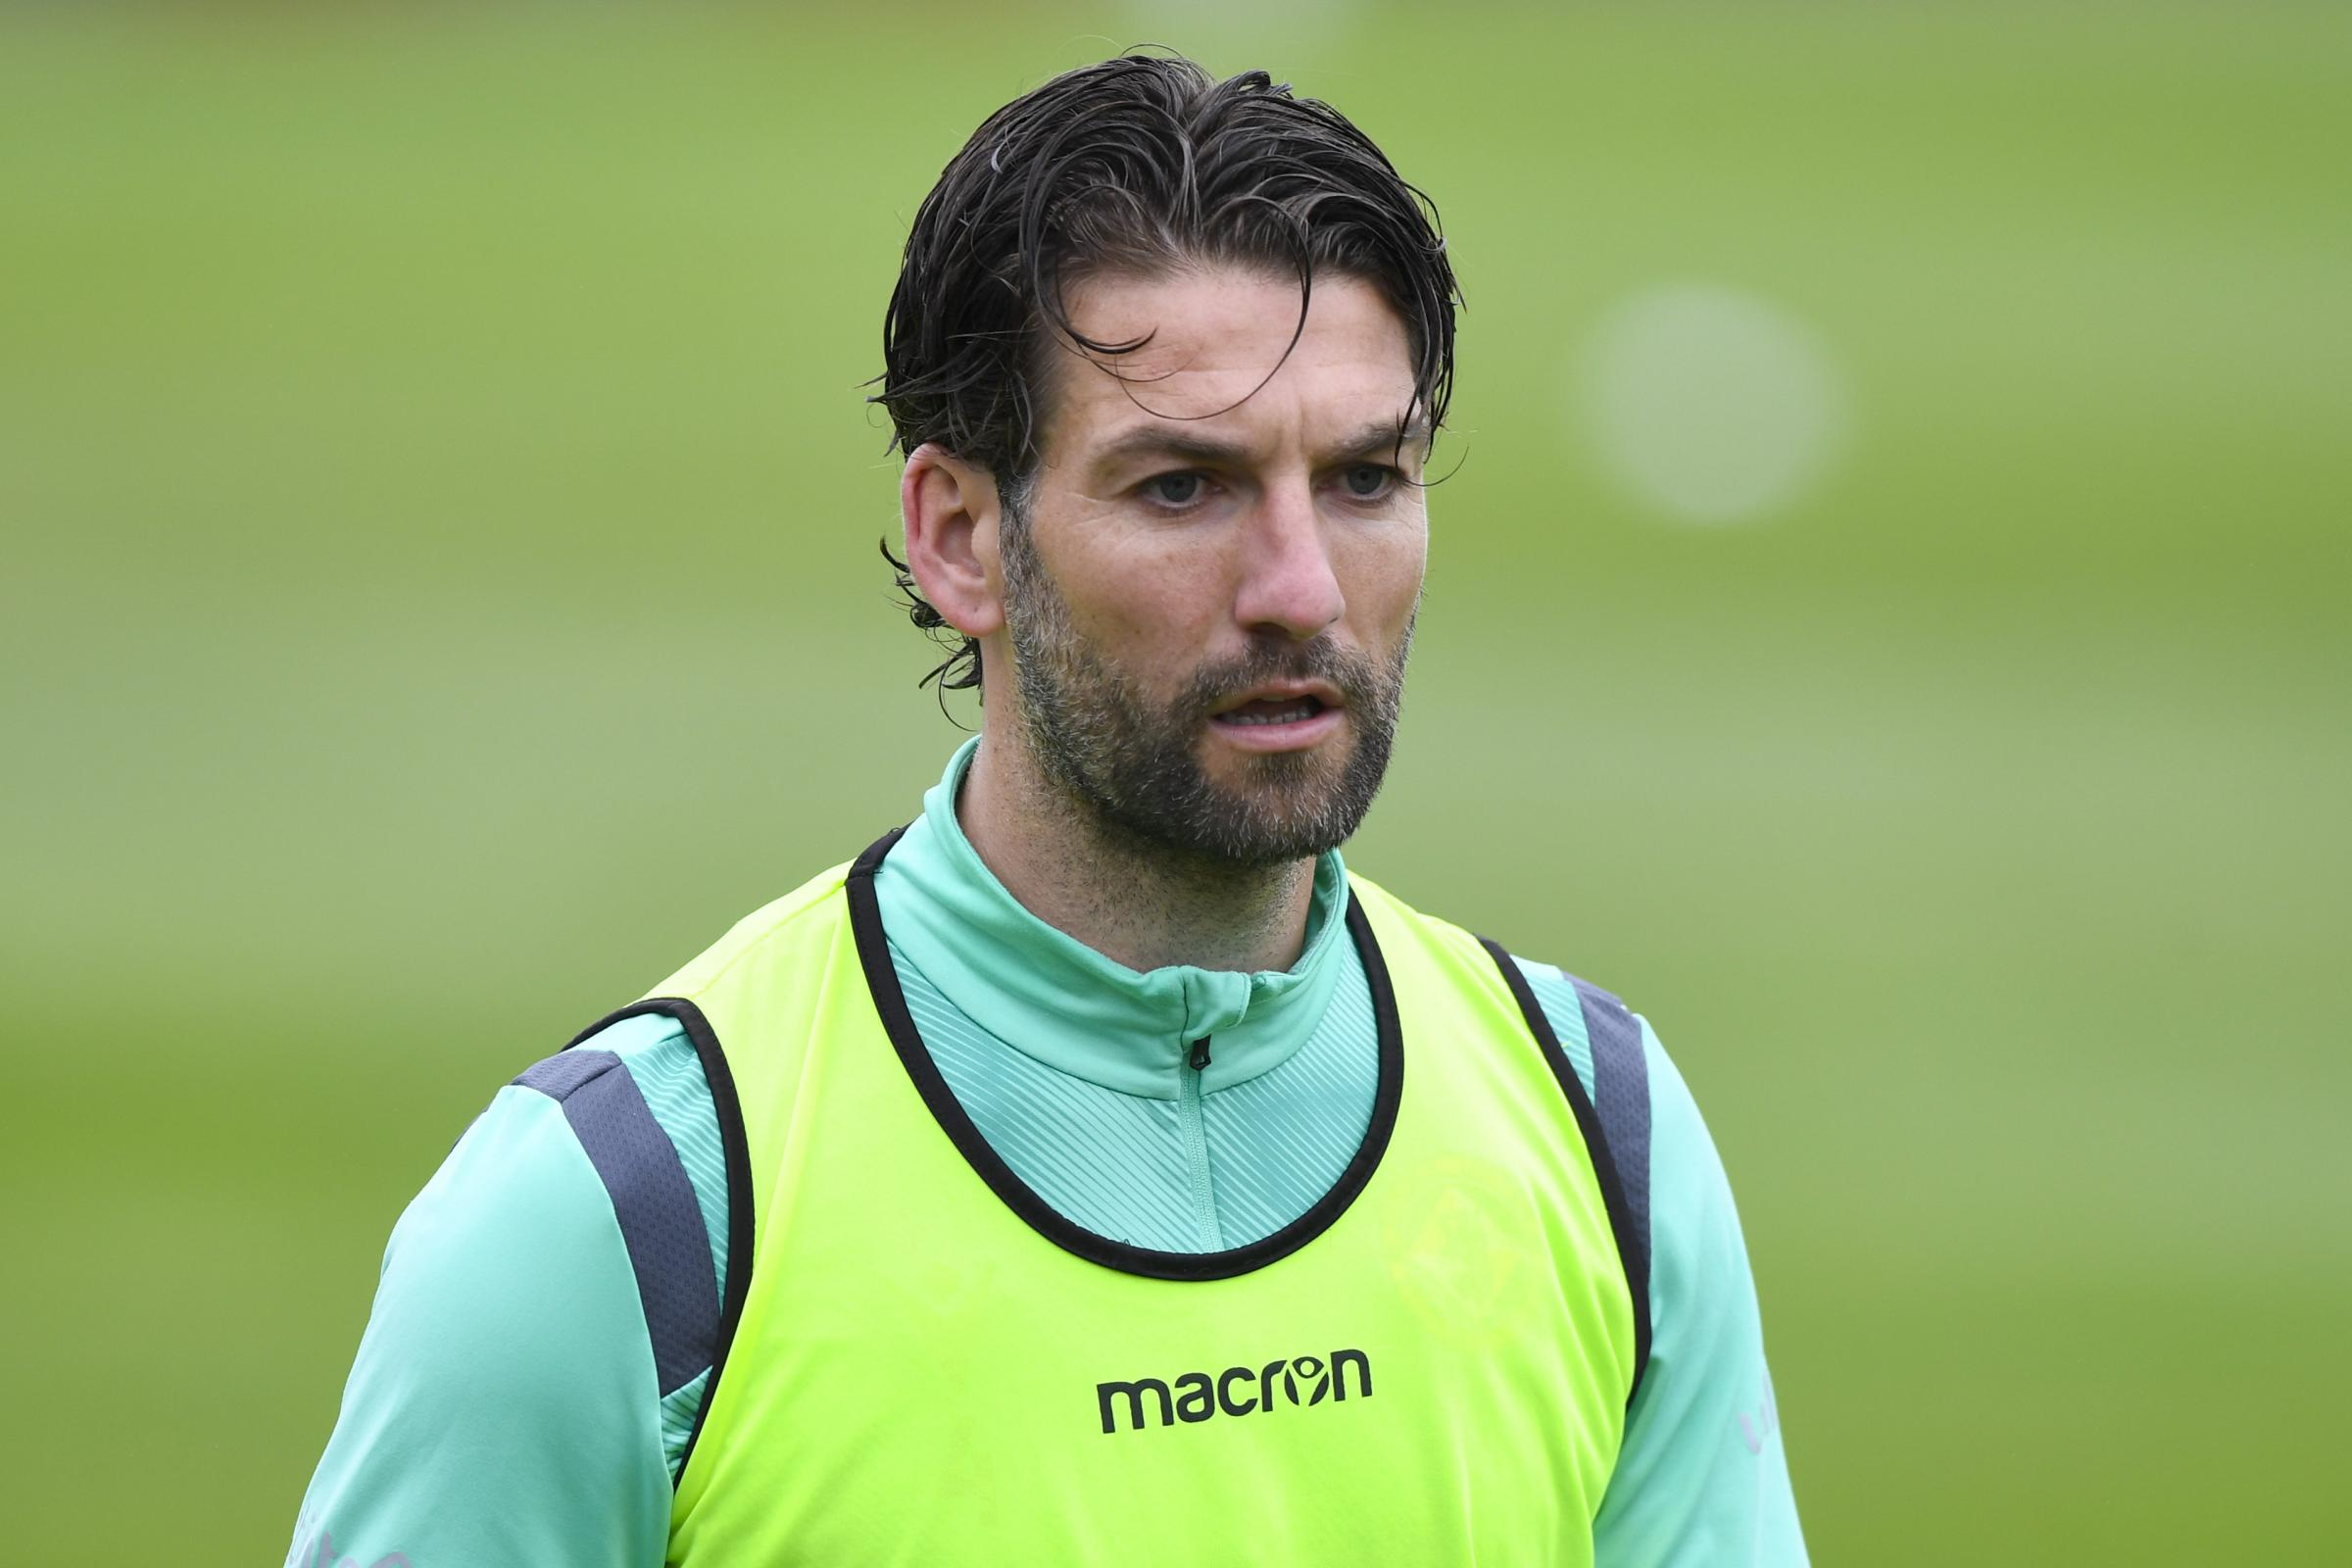 Dundee United defender Charlie Mulgrew 'delighted' cheeky free kick against Arbroath paid off